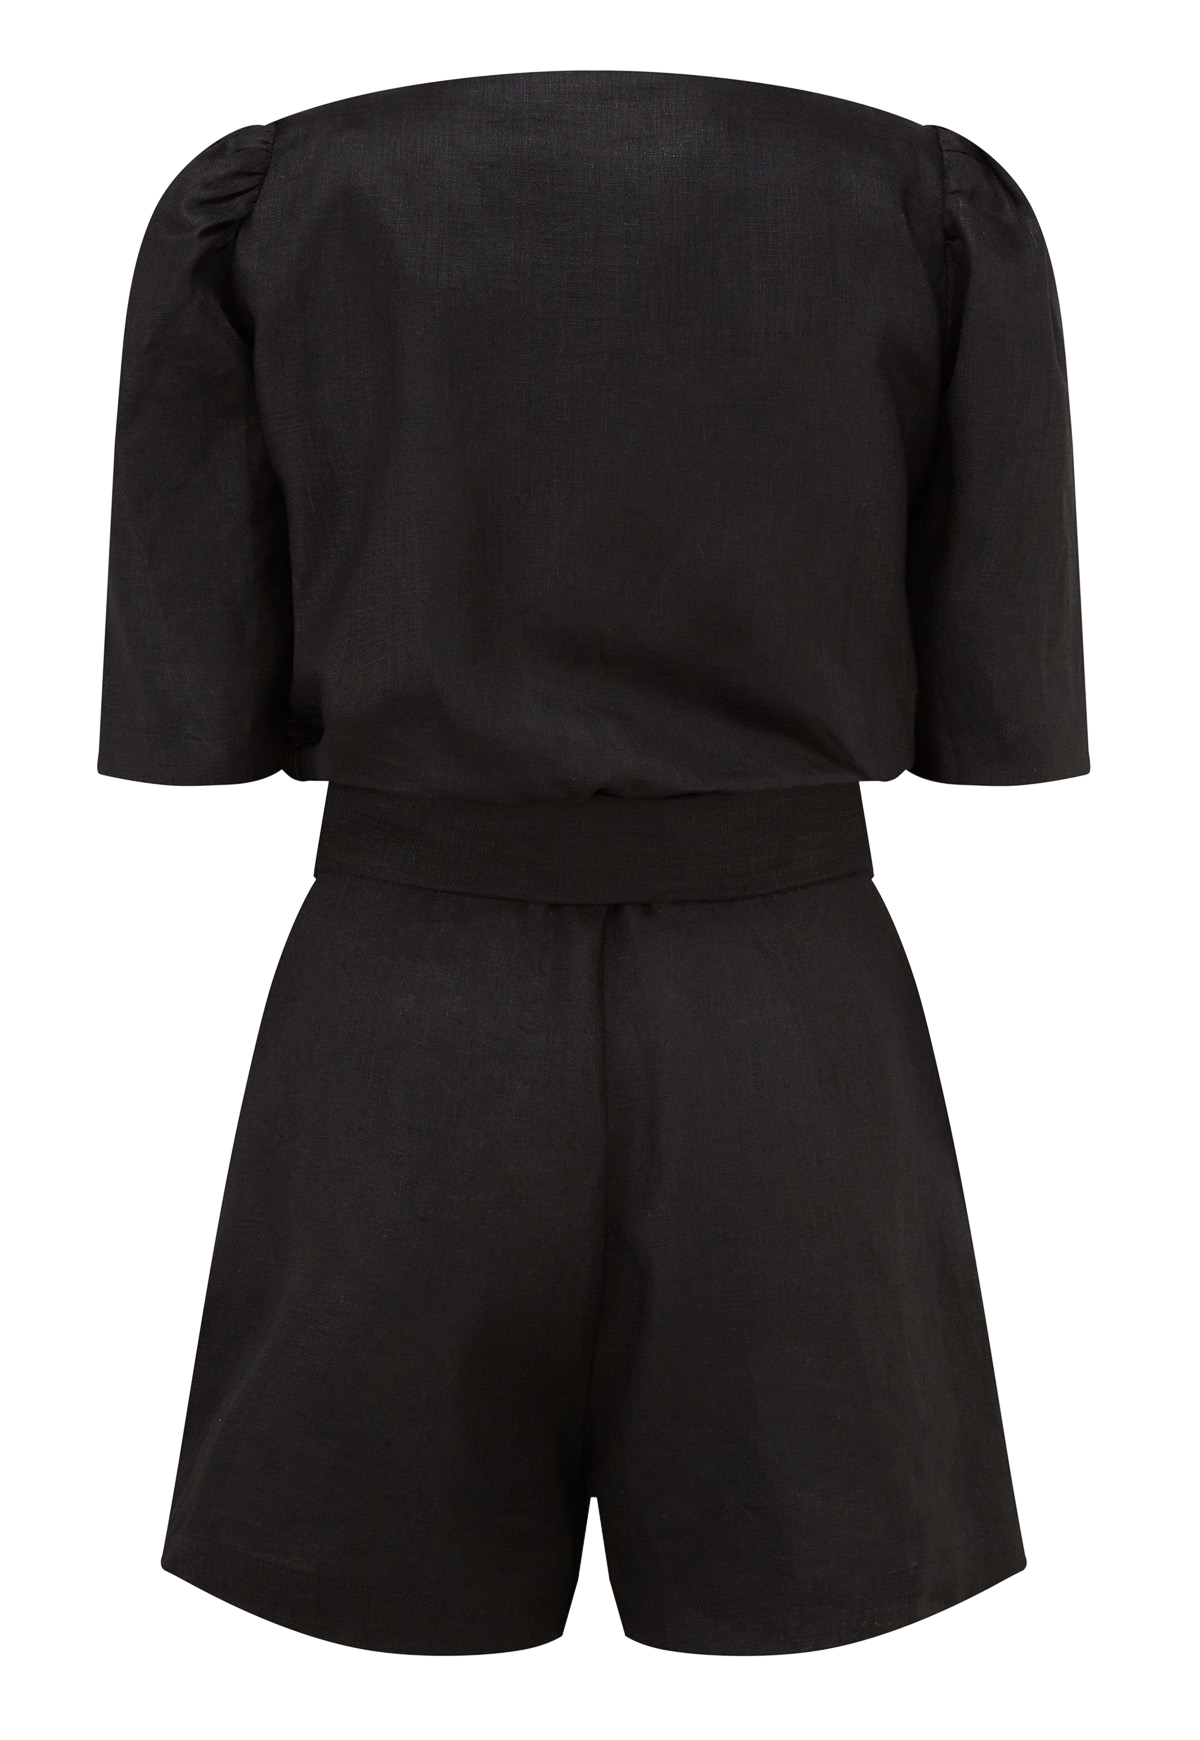 DIANA BLACK LINEN SHORT SUIT